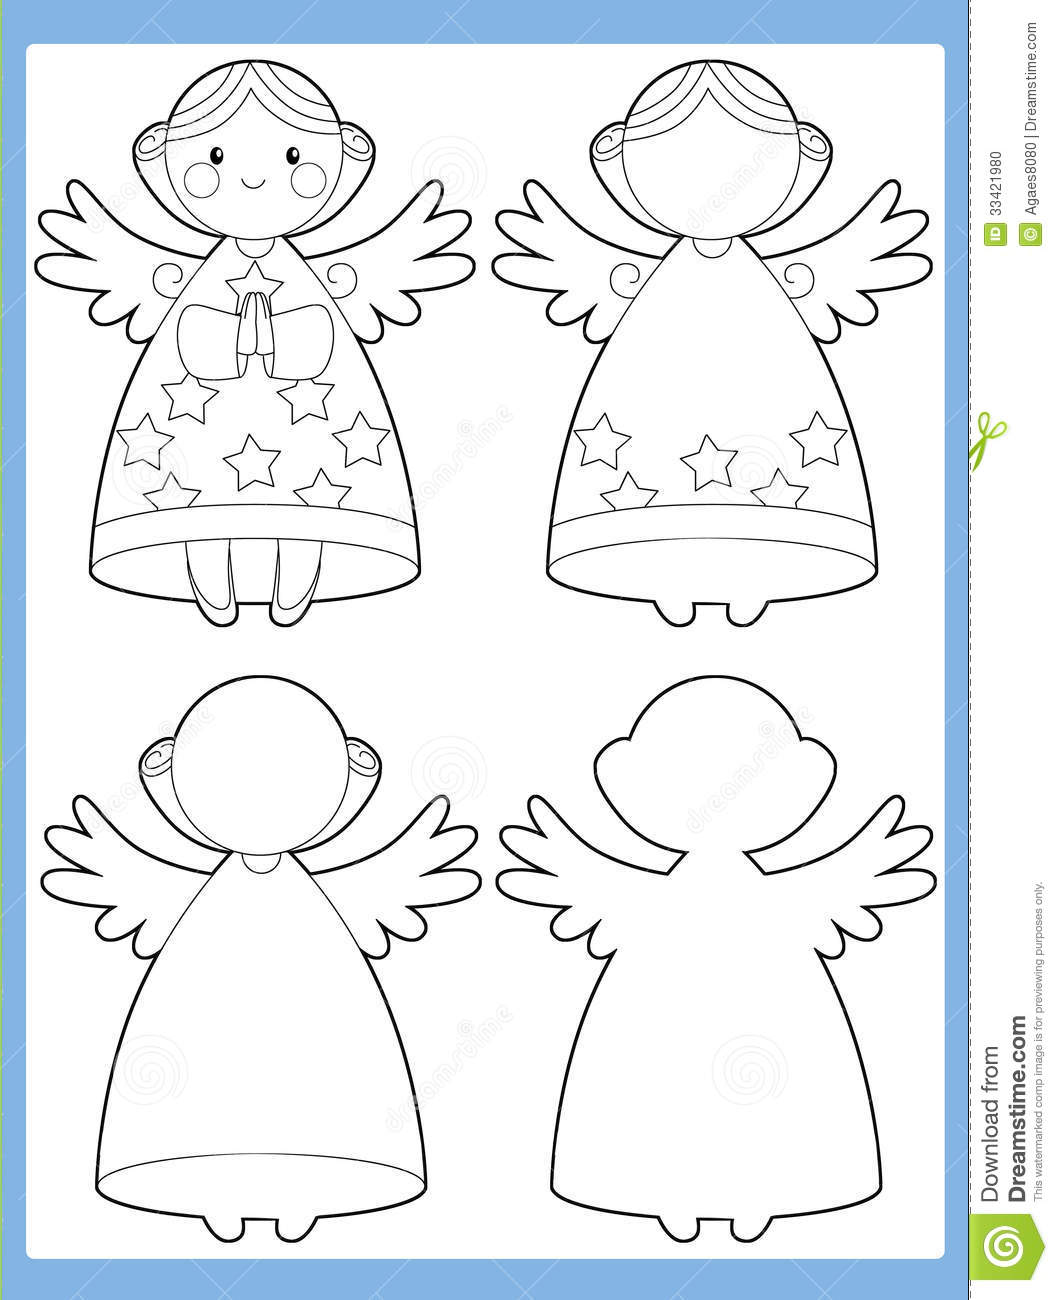 The Coloring Page With Pattern